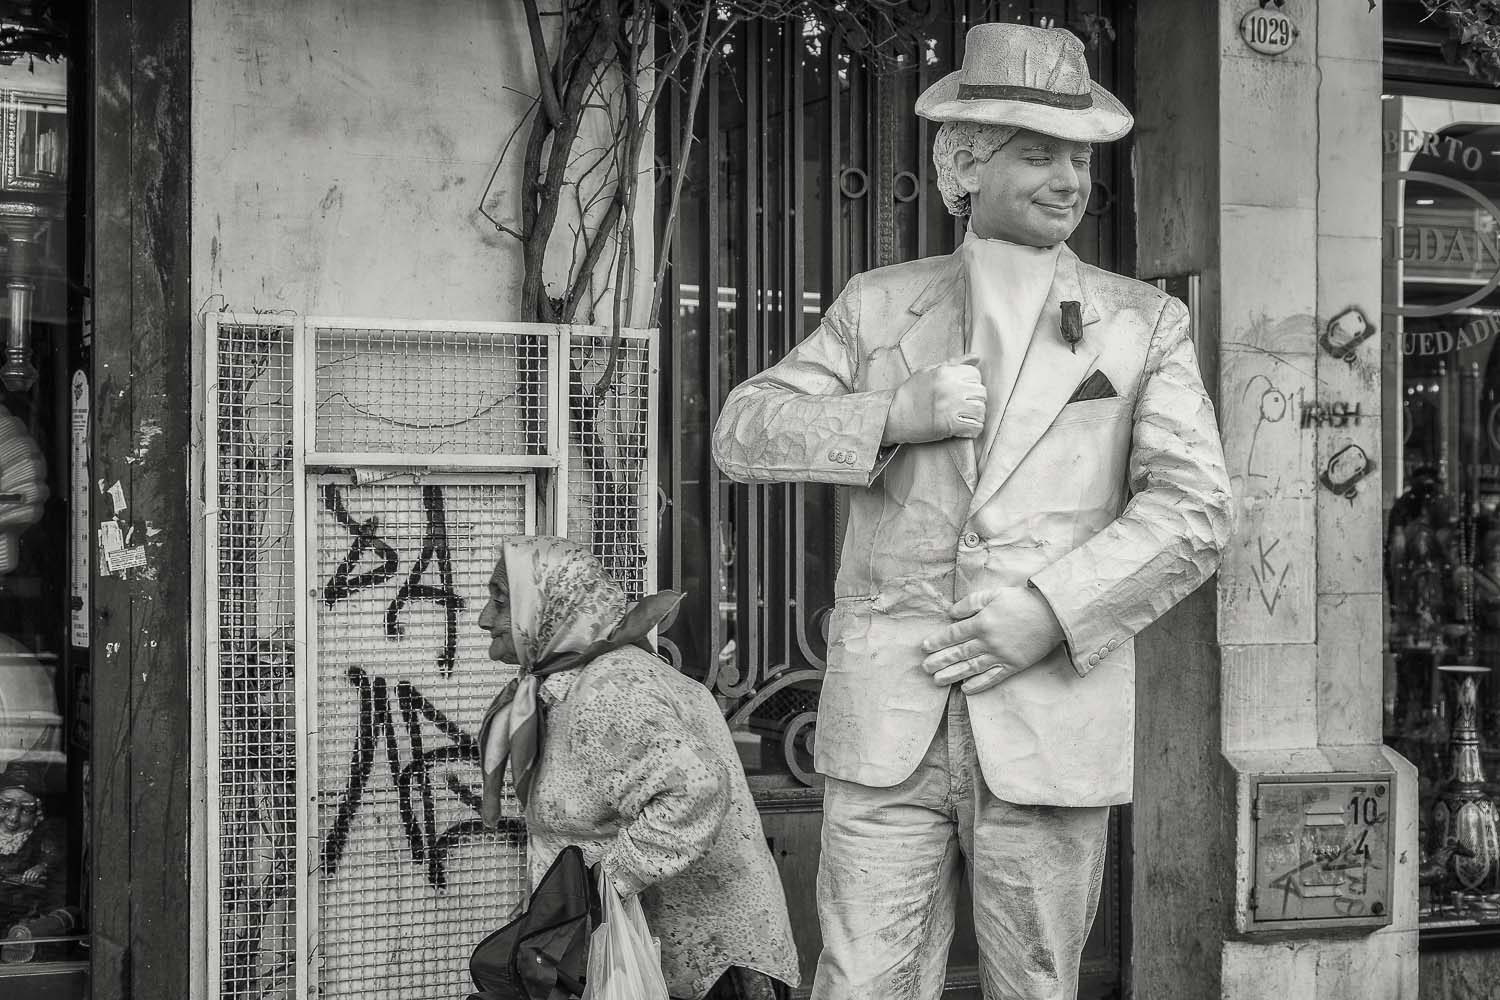 Street Performer and Elderly Lady, La Boca, Buenos Aires, Argent